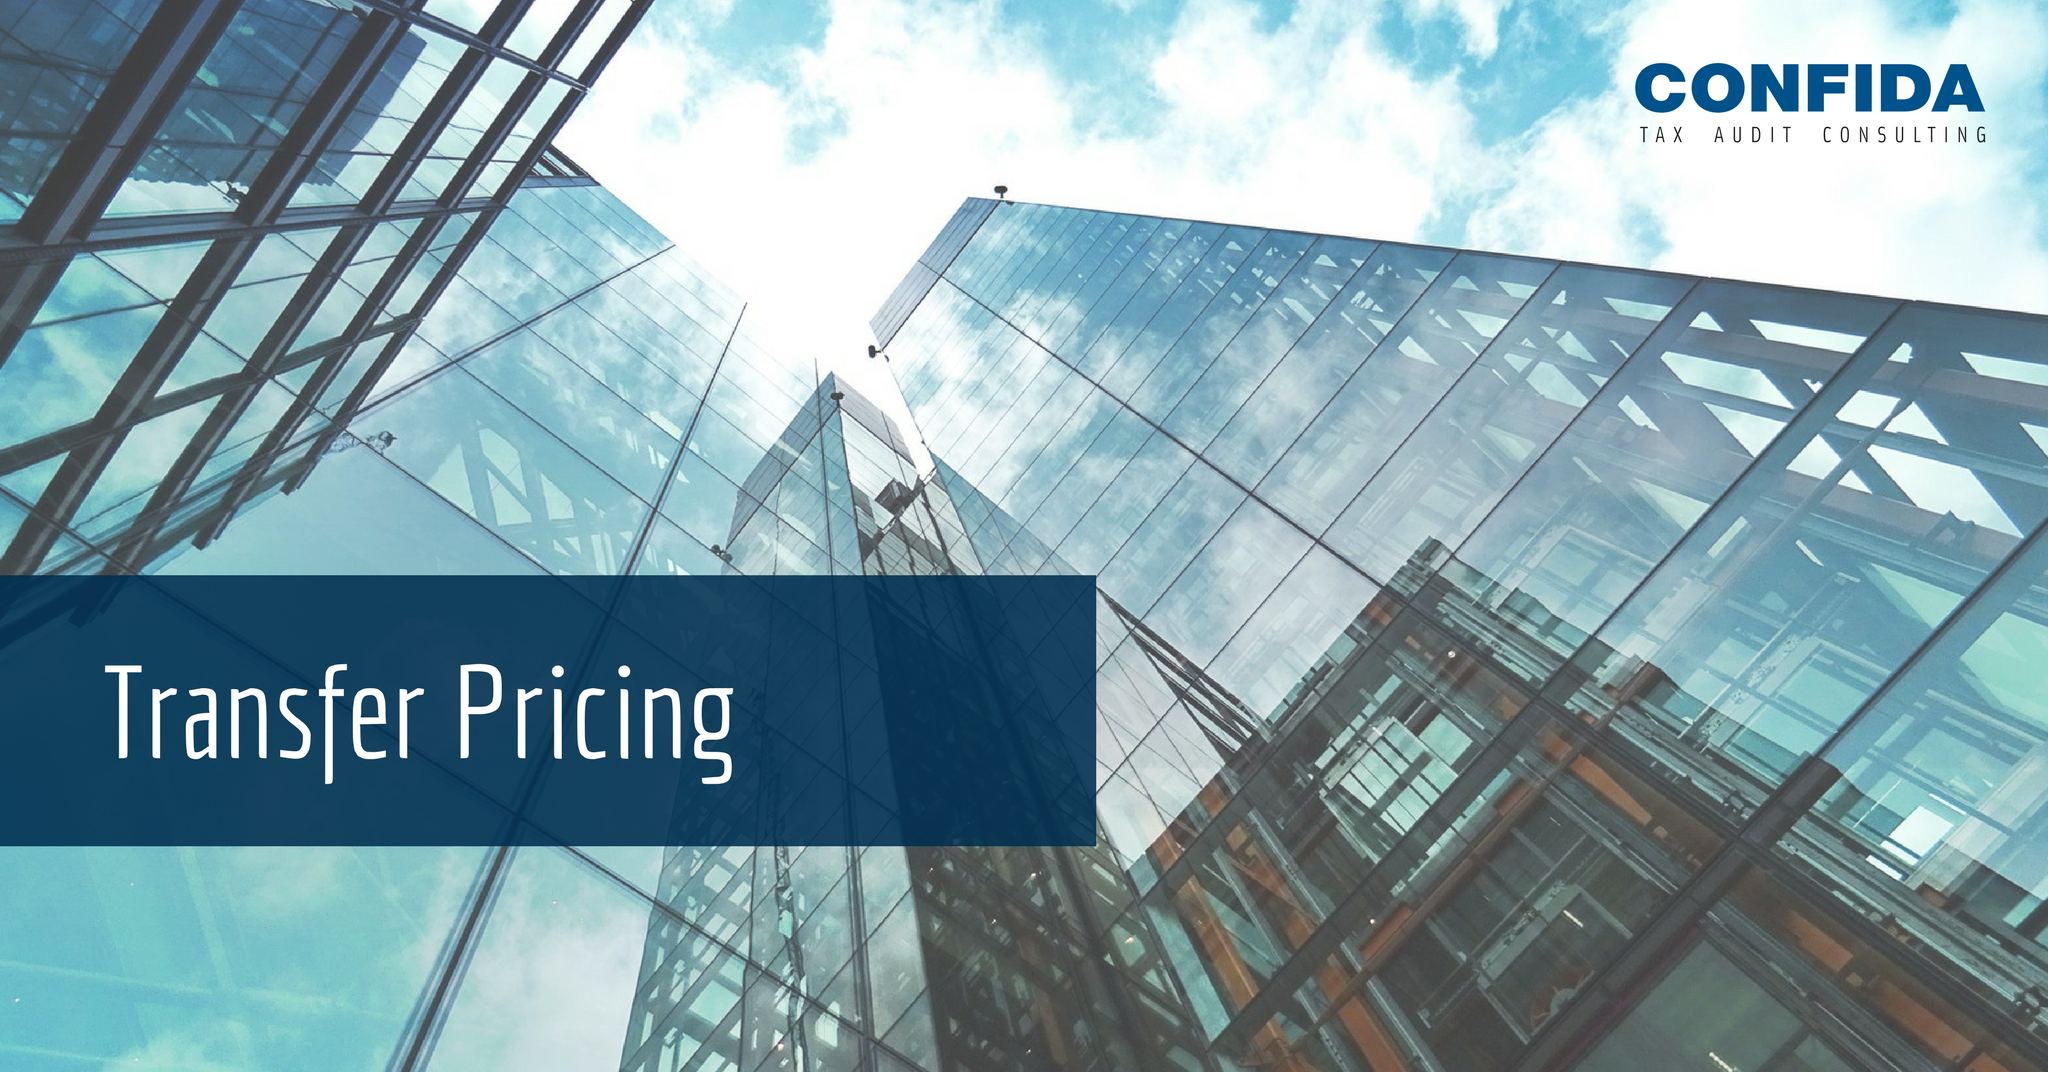 What Does Transfer Pricing Represent?